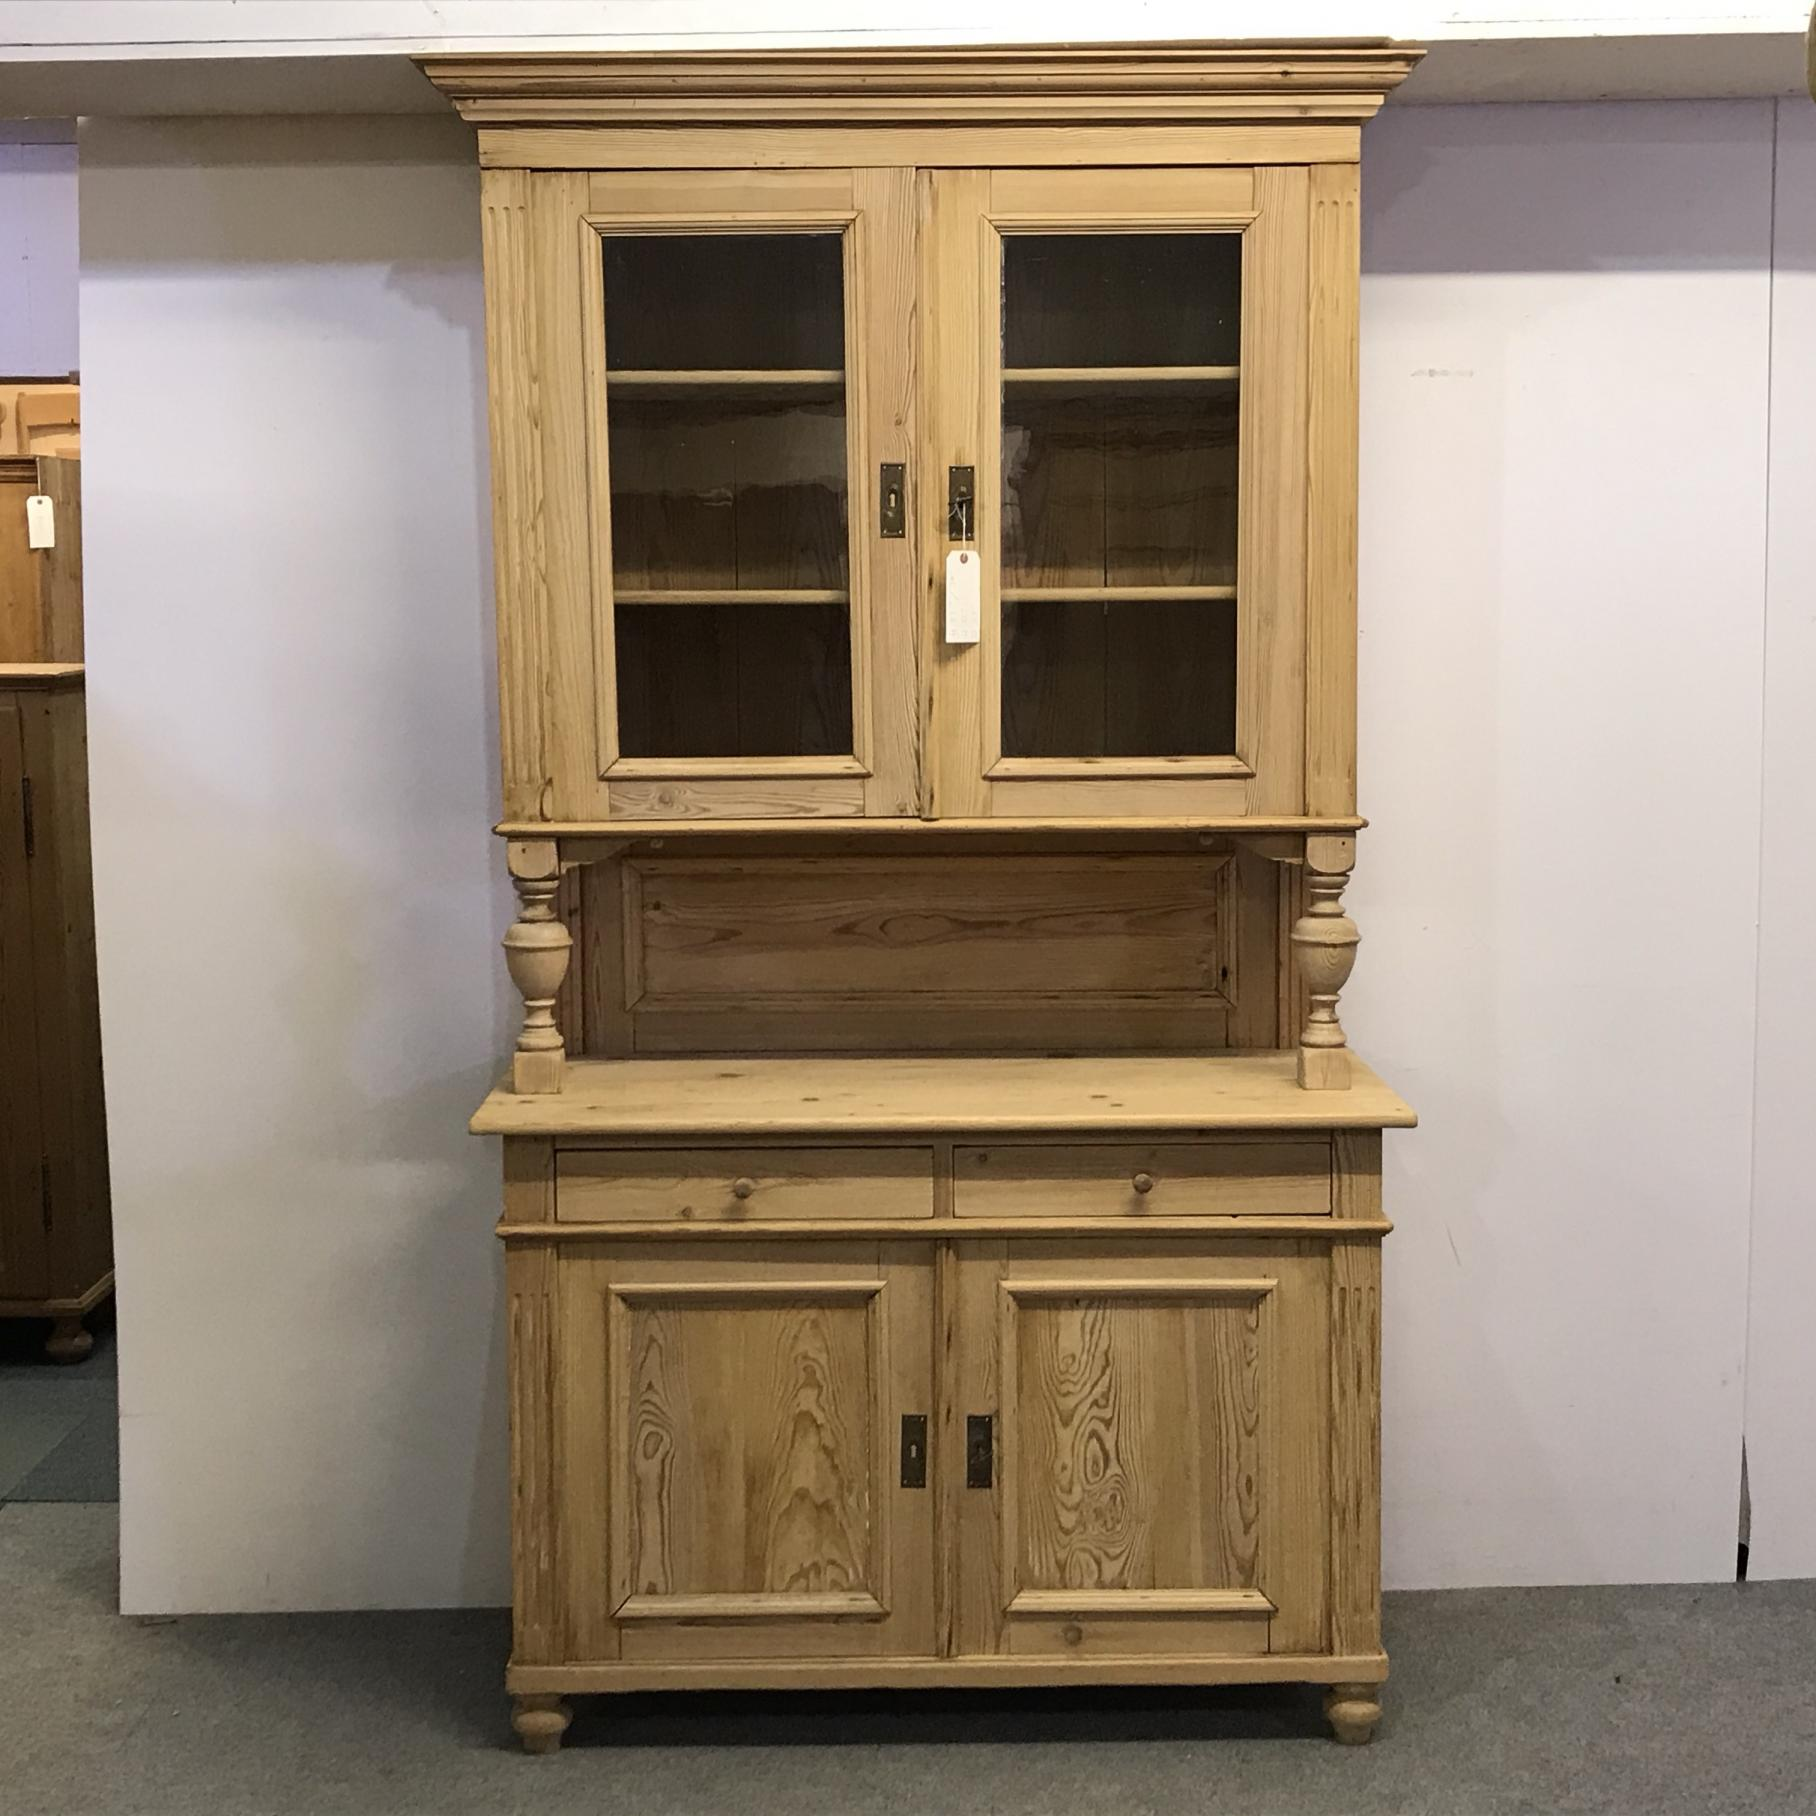 Picture of: Very Tall Antique Pine Dresser With Glazed Cabinet D7505d Dressers 1979 Anyantiques